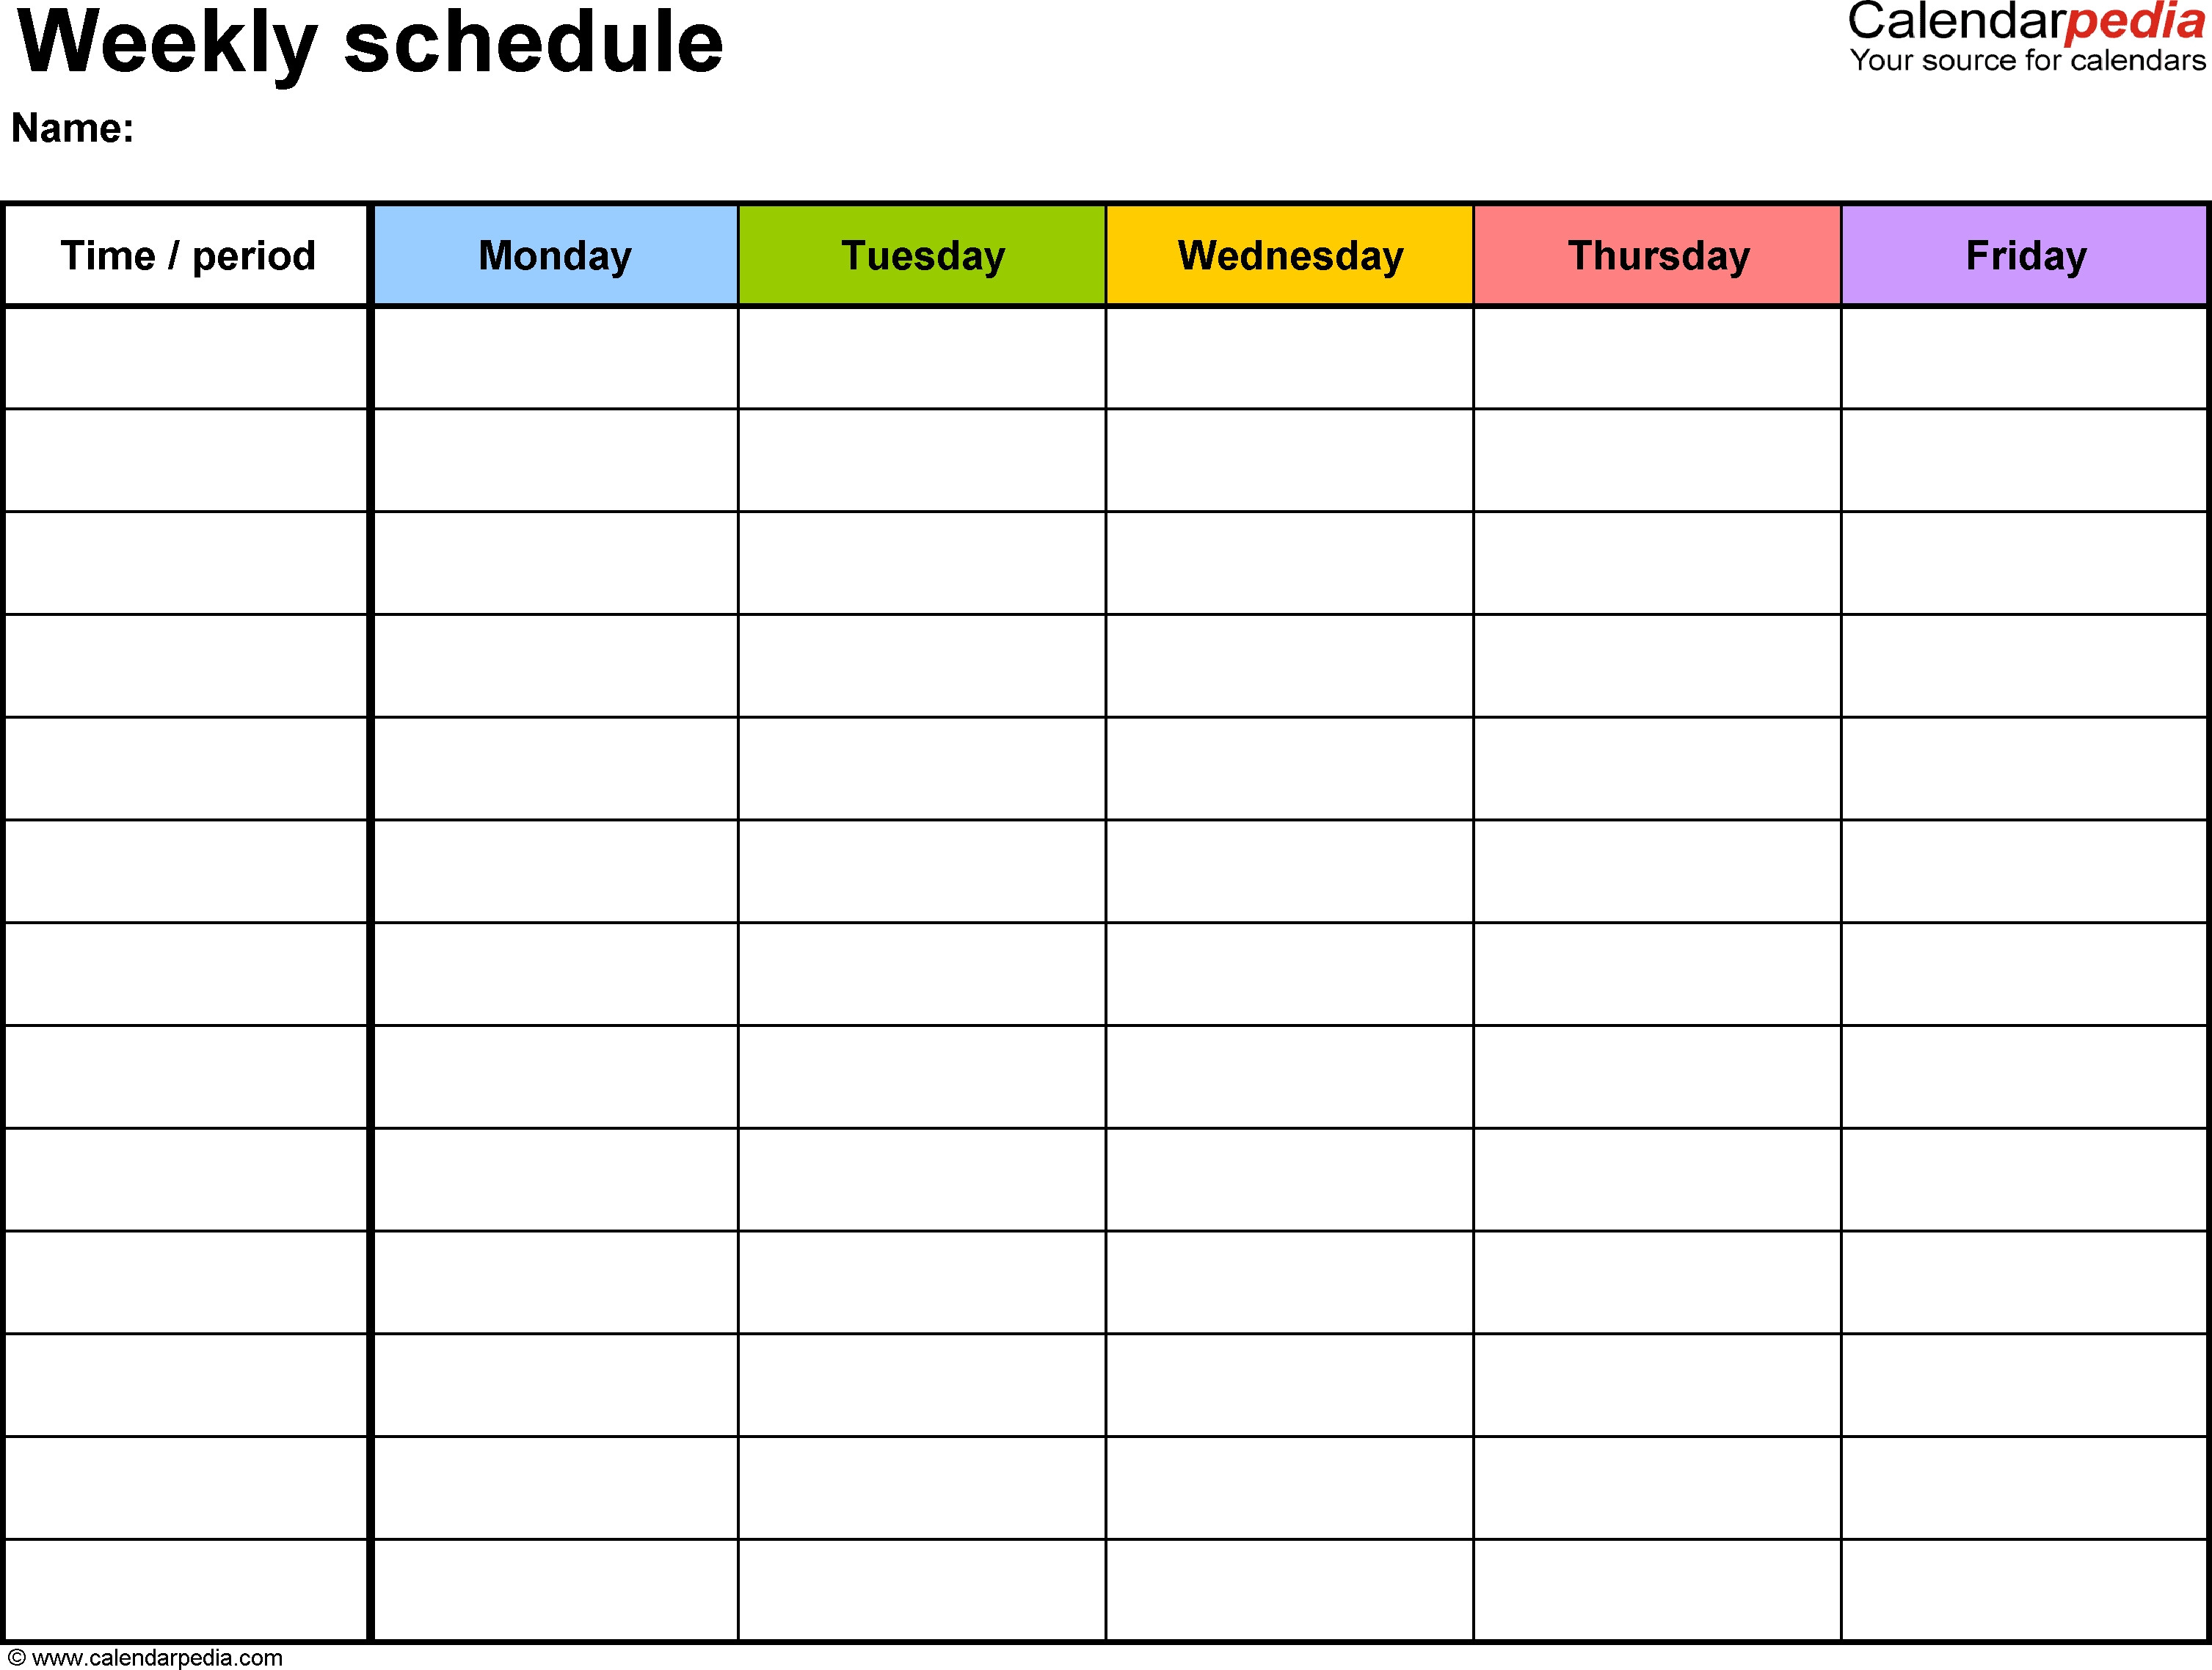 Free Weekly Schedule Templates For Word - 18 Templates  Free Printable Weekly Schedule Planner